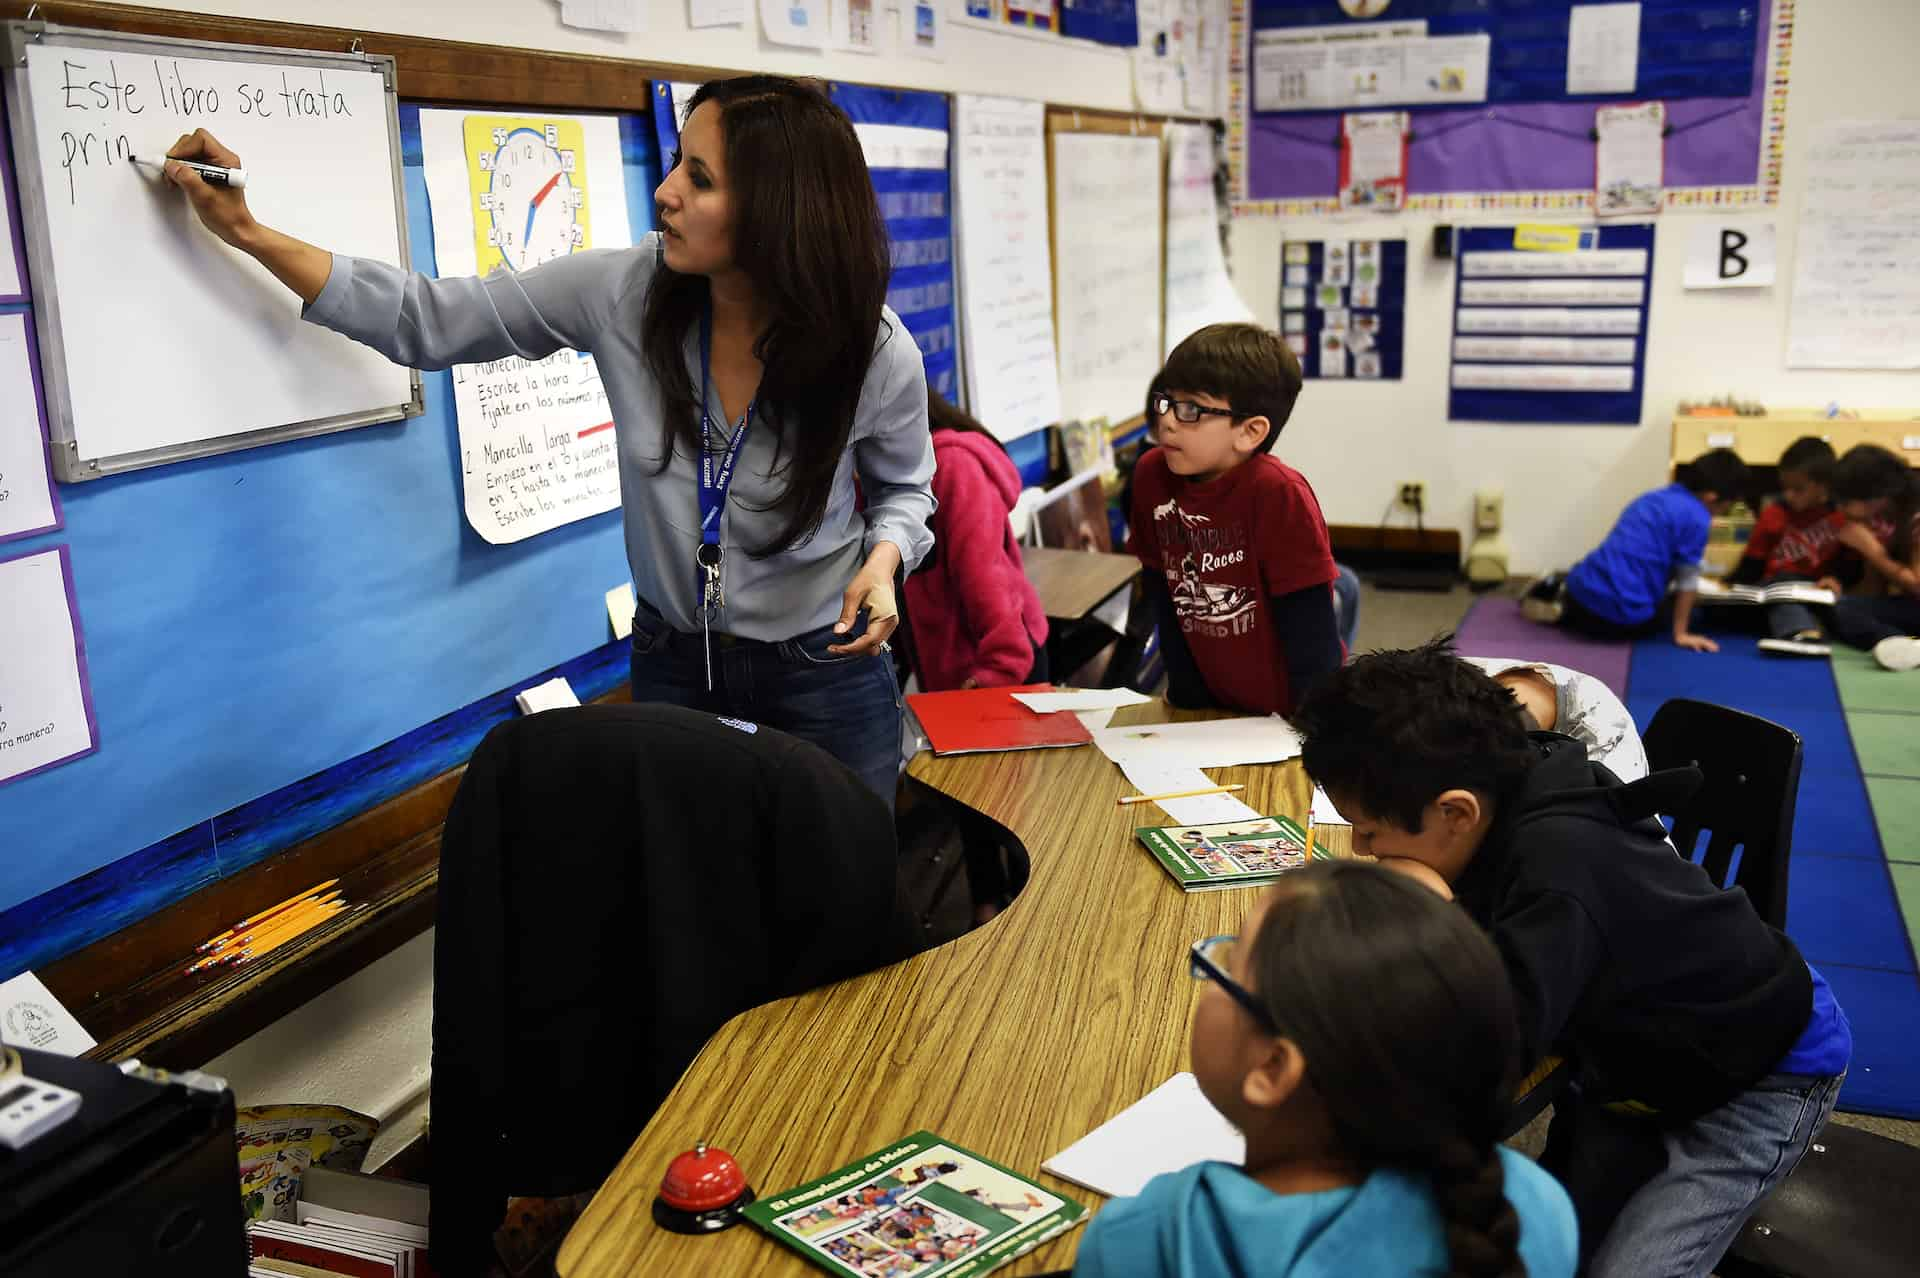 American educators teach longer for less pay than their foreign peers